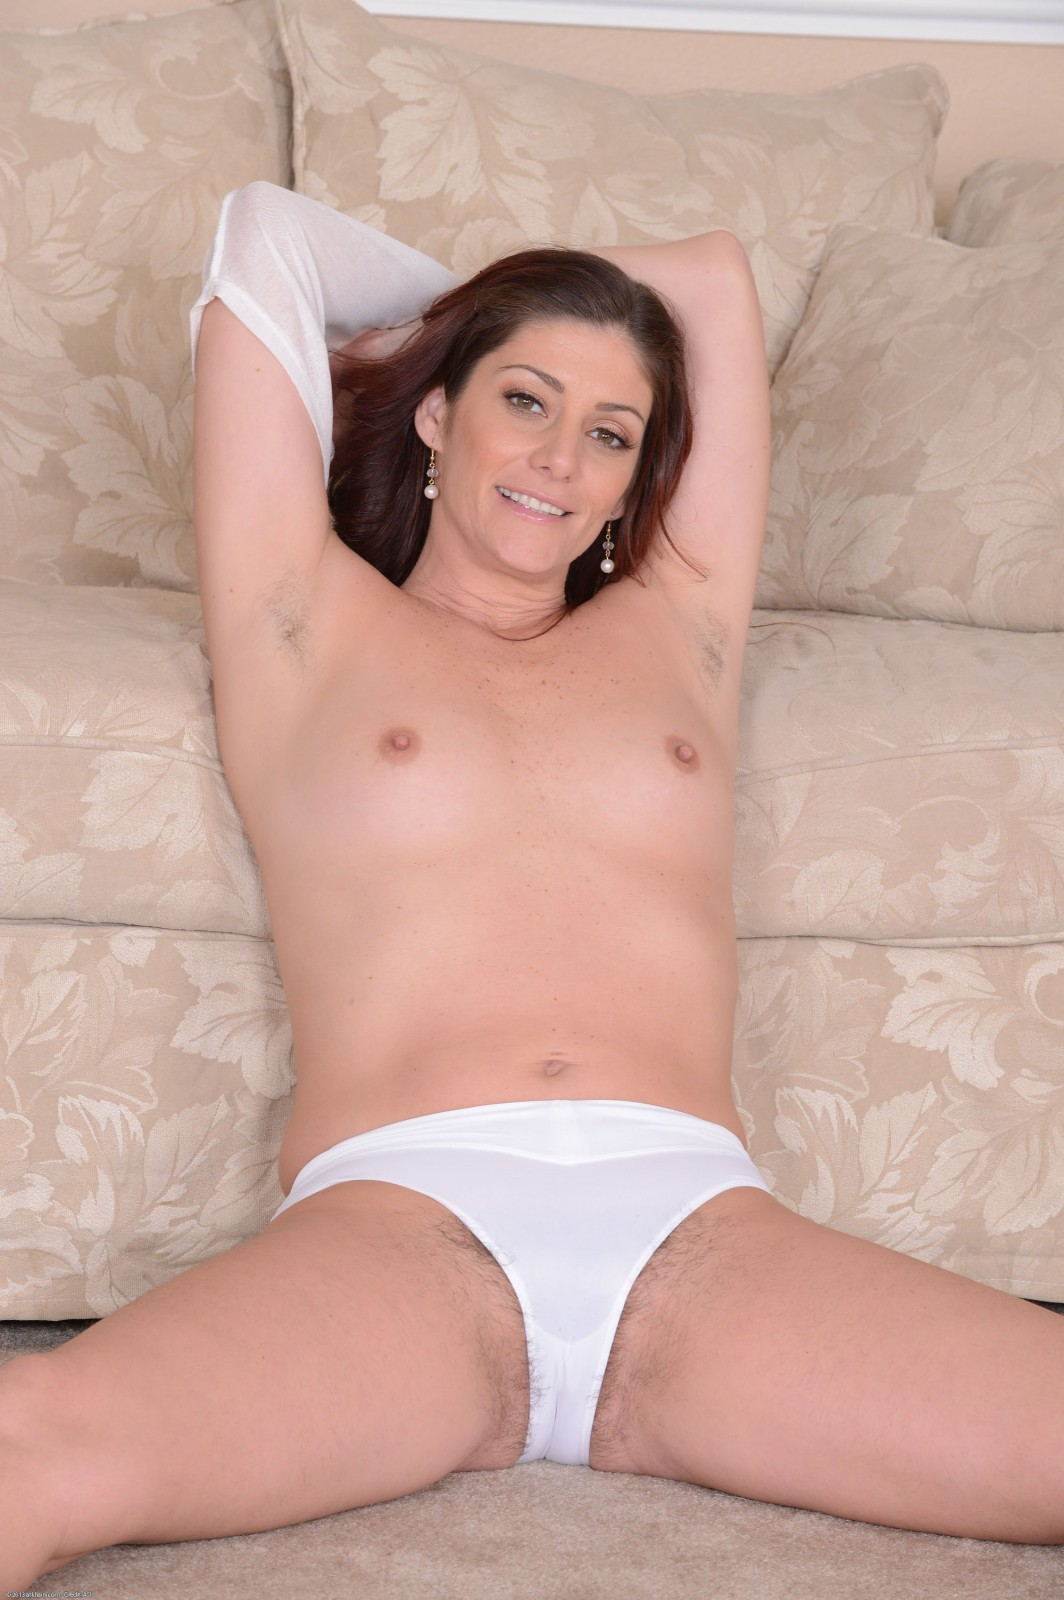 Alicia silver plays with her pubes and shows off 6